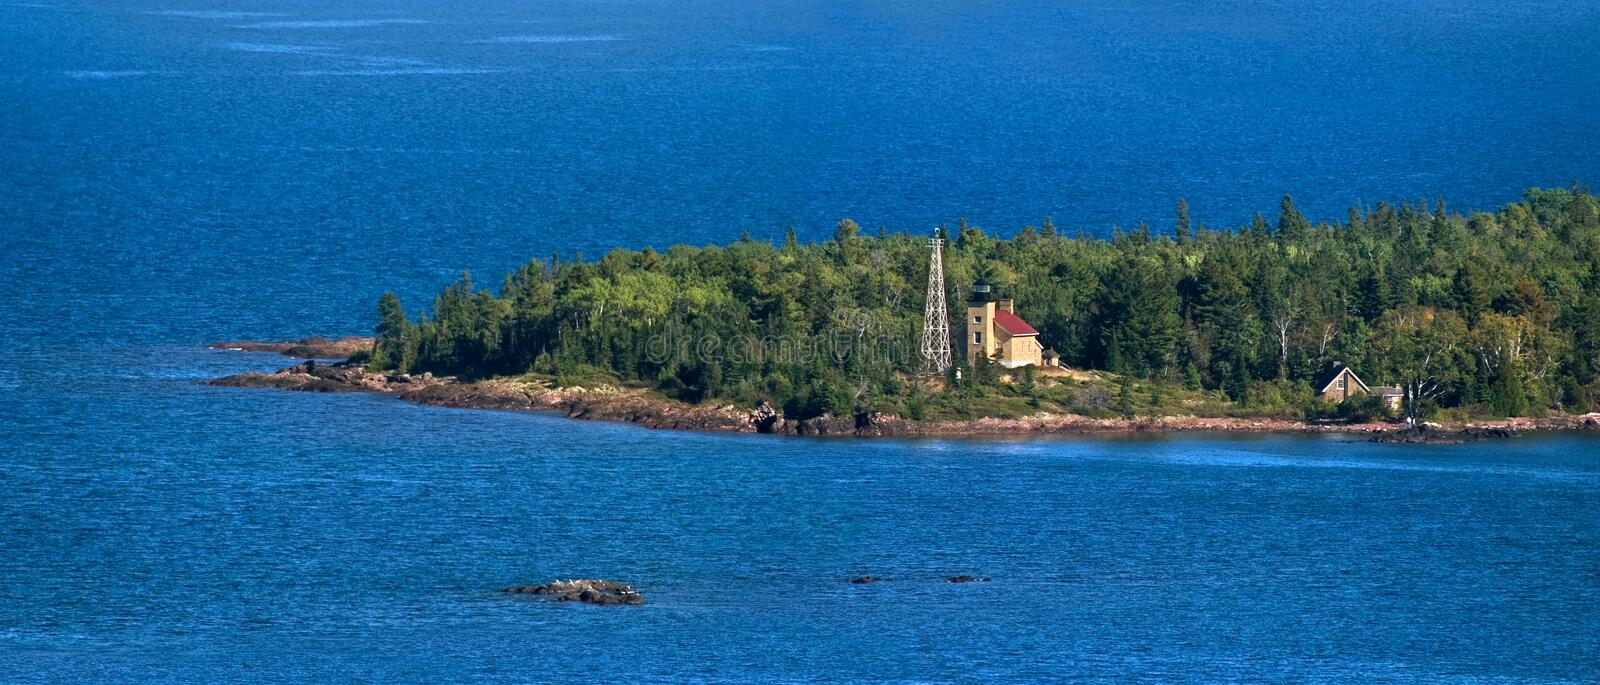 Copper Harbor Lighthouse. The Historic Copper Harbor Lighthouse On Lake Superior, Seen From Brockway Mountain, Michigan's Upper Peninsula, Panoramic View stock photography